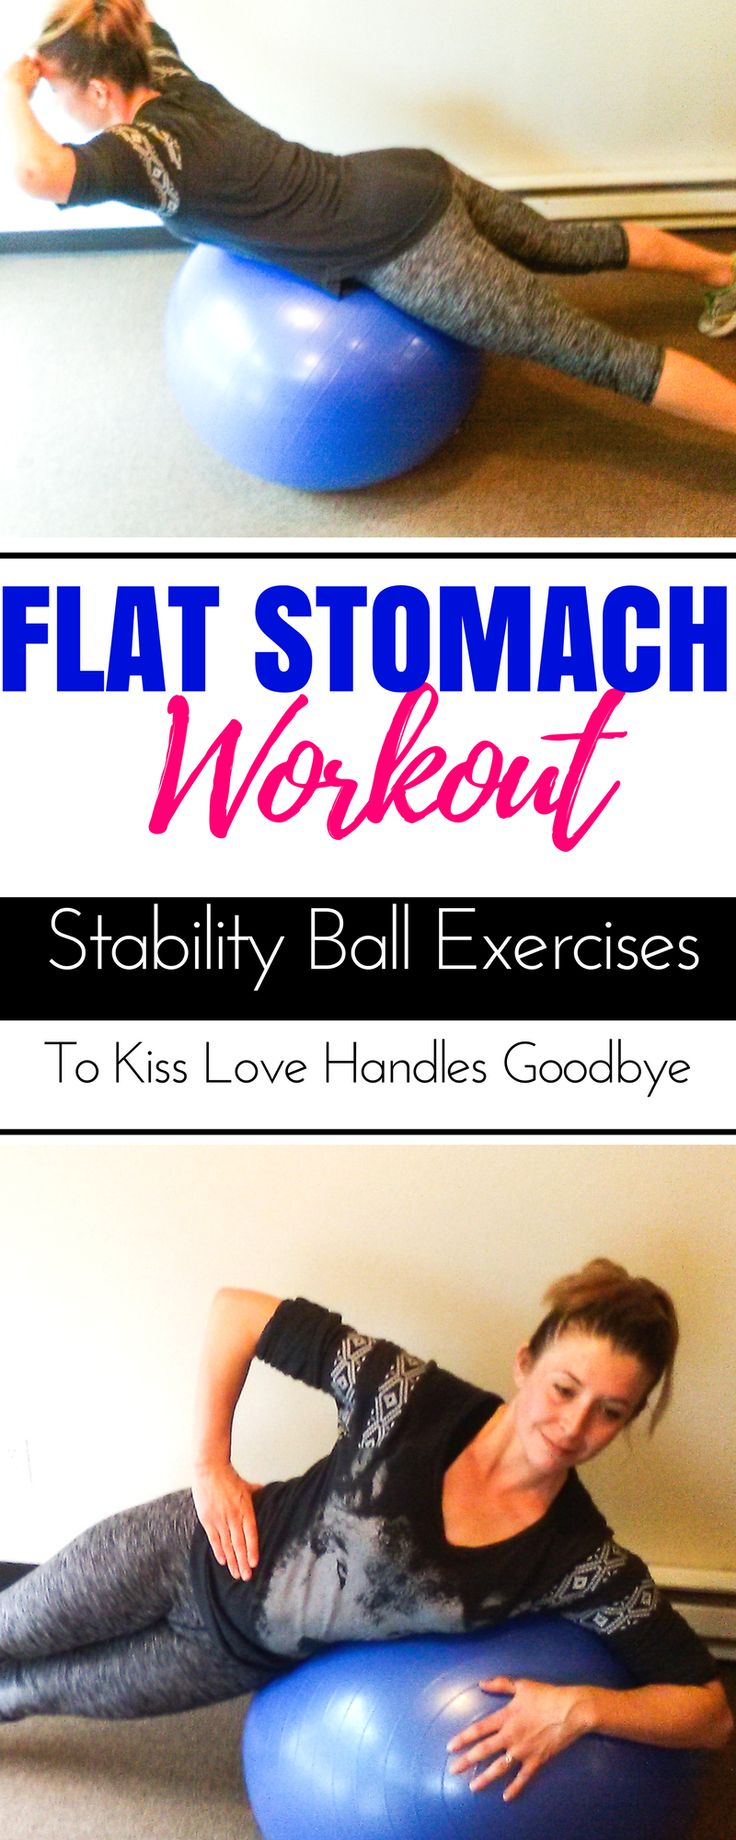 This stability ball ab workout is perfect for beginners for abs. Banish muffin tops and mummy tummy and get a flat belly after pregnancy at home or in gym. This exercise ball workout is your plan for losing weight with ab exercises as a postpartum workout even targeting lower abs. Beginner workouts for weight loss on this website. #flatbelly #postpartumfitness #exerciseball #stabilityball